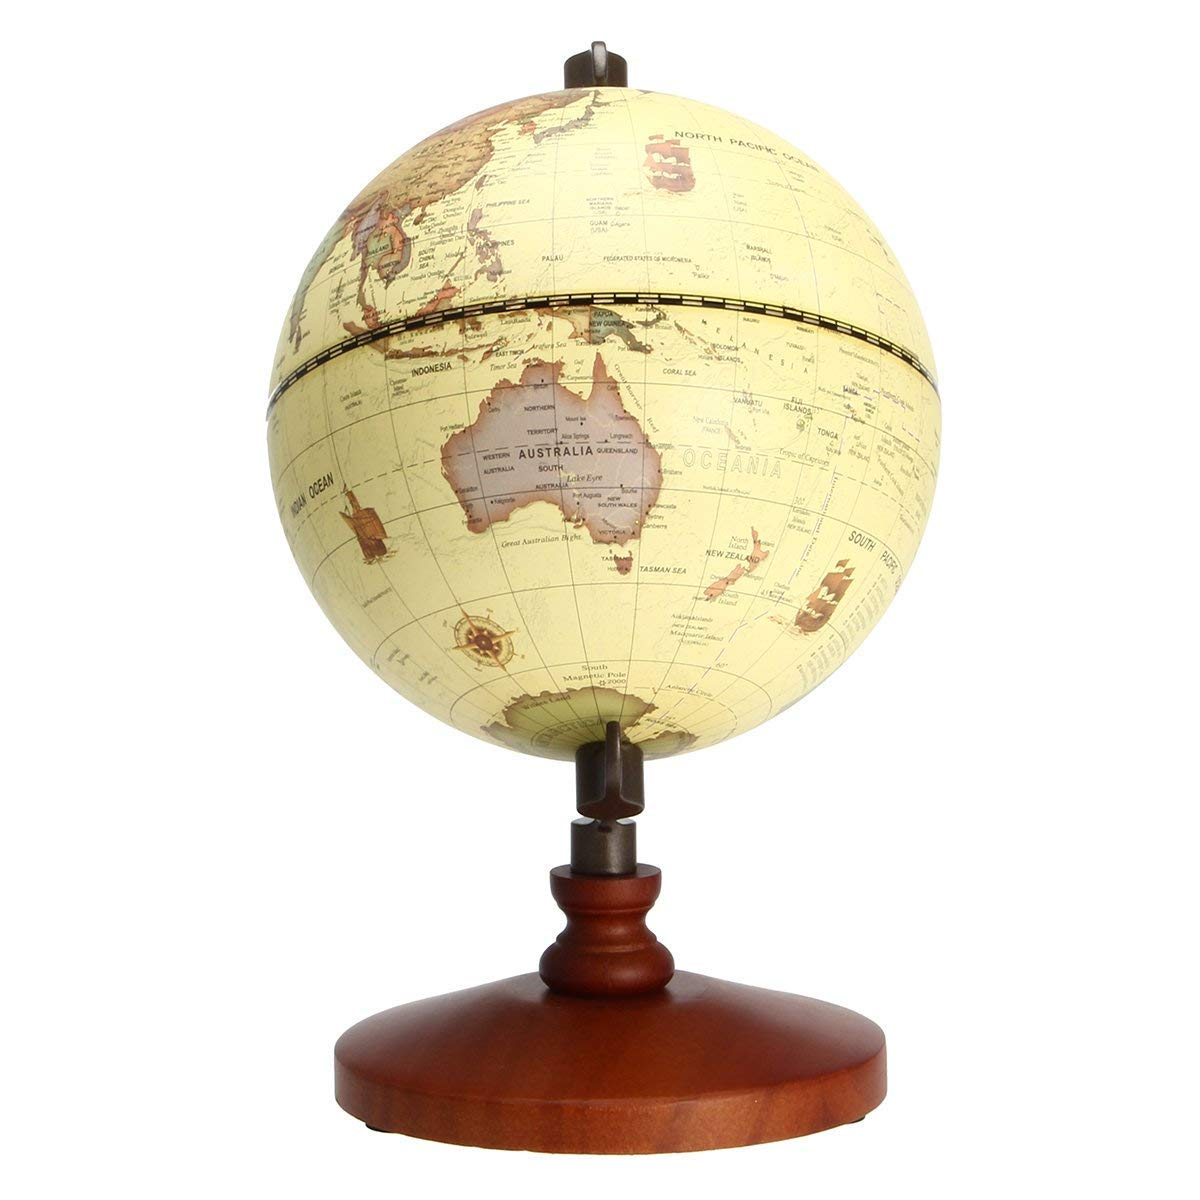 Bloomerang 5.5 Vintage Desktop Table Rotating Earth World Map Globe on world globe, world war, world military, world hunger, world most beautiful nature, world of warships, world wide web, world wallpaper, world travel, world history, world culture, world earth, world shipping lanes, world atlas, world records, world flag, world glode, world projection, world statistics, world border,